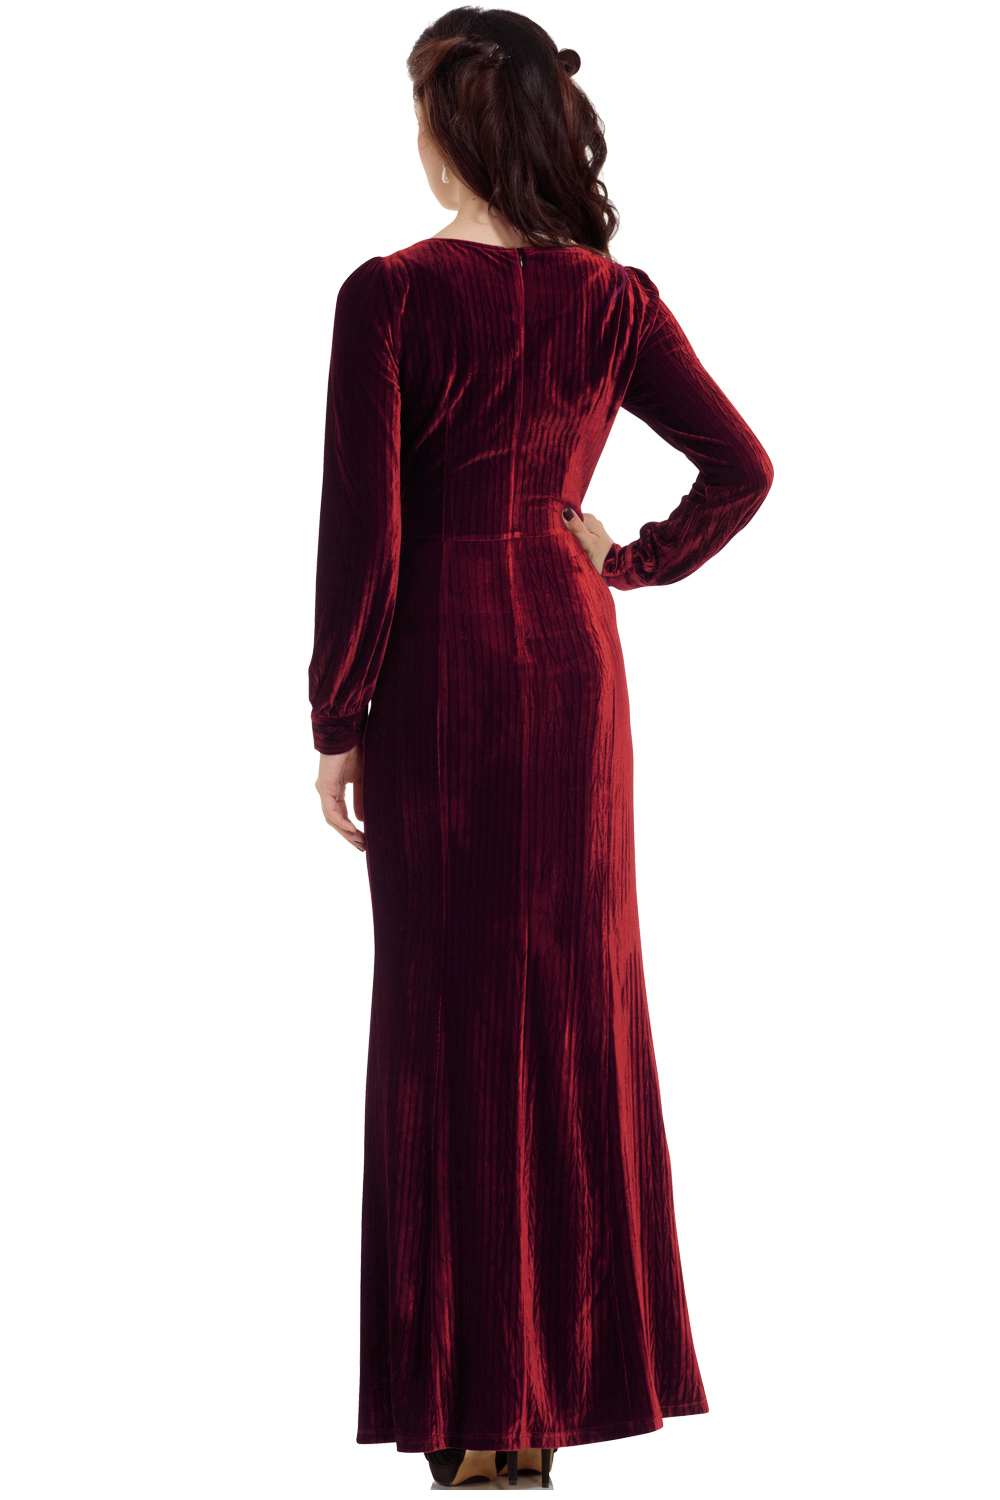 30s Vixen Olive Wine Red Glamour Velvet Dress V Neck